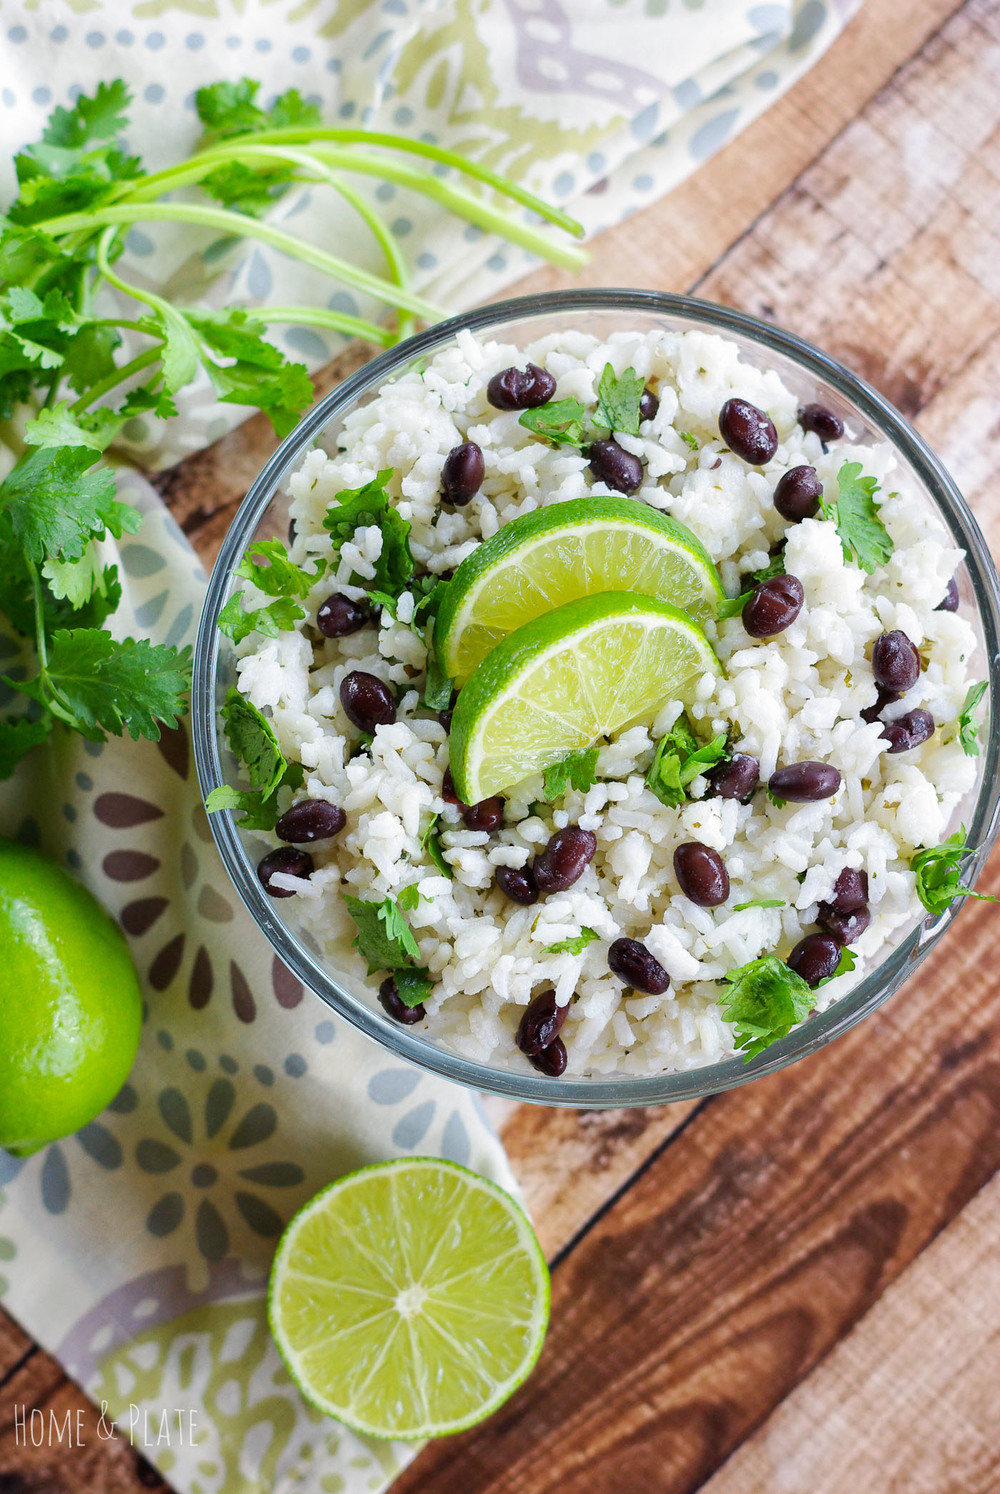 Jazz up plain jasmine rice by adding fresh squeezed lime juice, black beans and chopped cilantro.  Jasmine Rice with Fresh Lime, Black Beans & Cilantro | www.homeandplate.com | Jazz up plain jasmine rice by adding fresh squeezed lime juice, black beans and chopped cilantro.